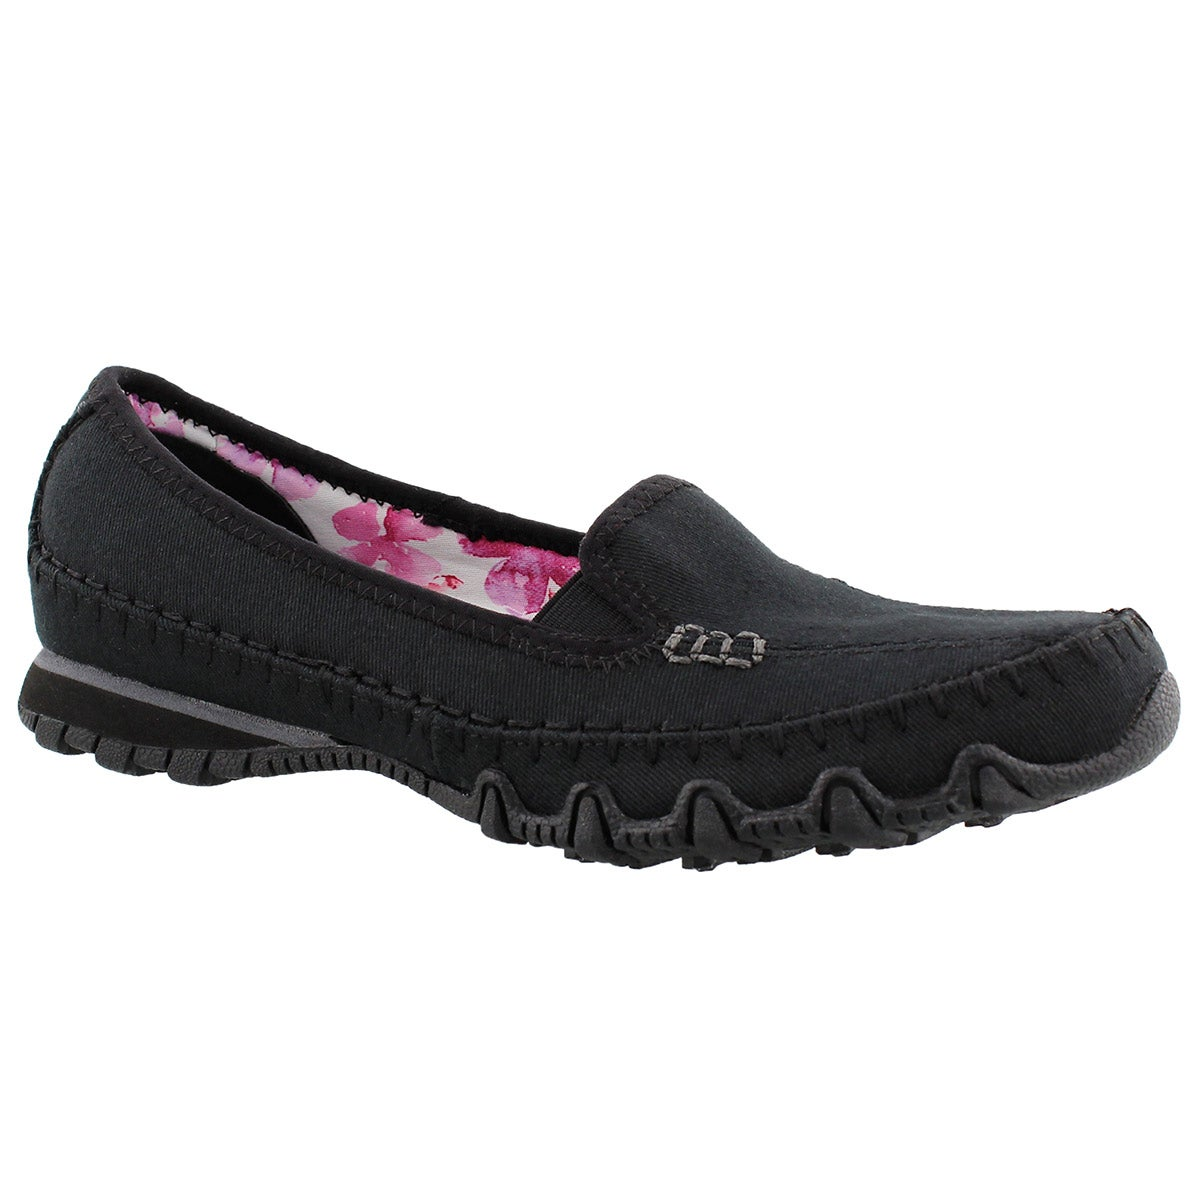 Women's JAYWALK Bikers black casual shoes